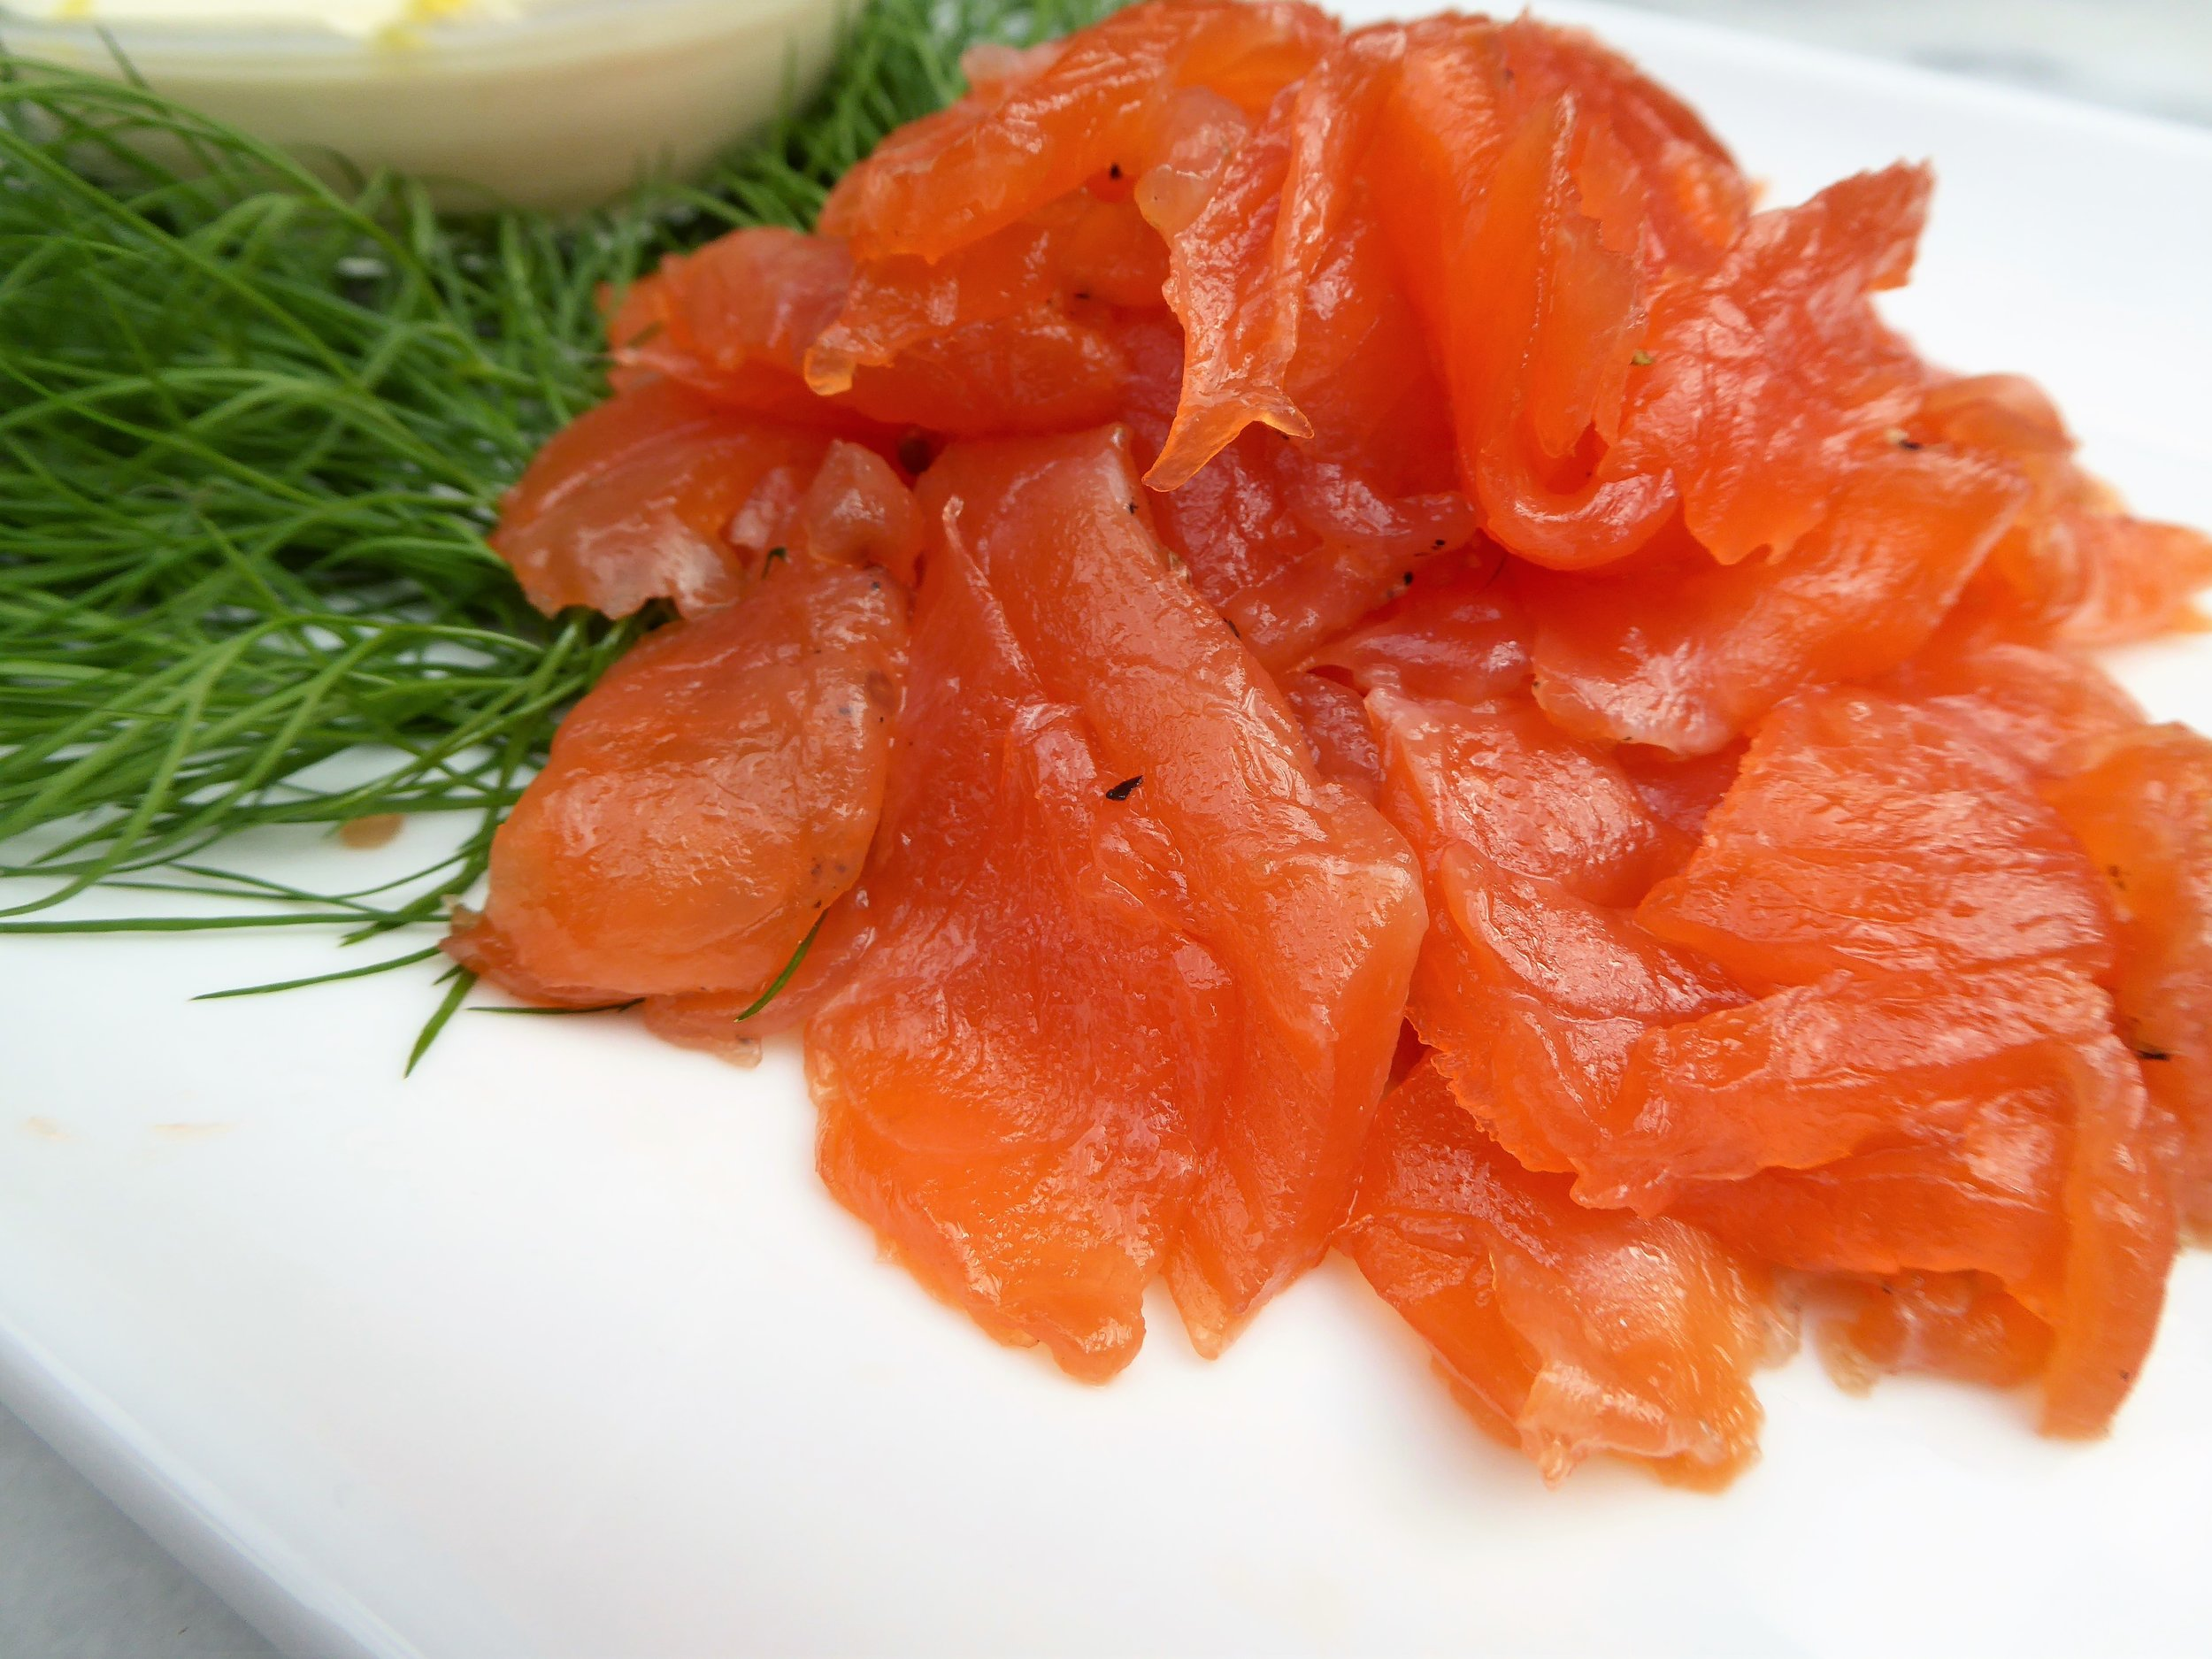 I like to pre-slice gravlax before serving to make it easier for guests